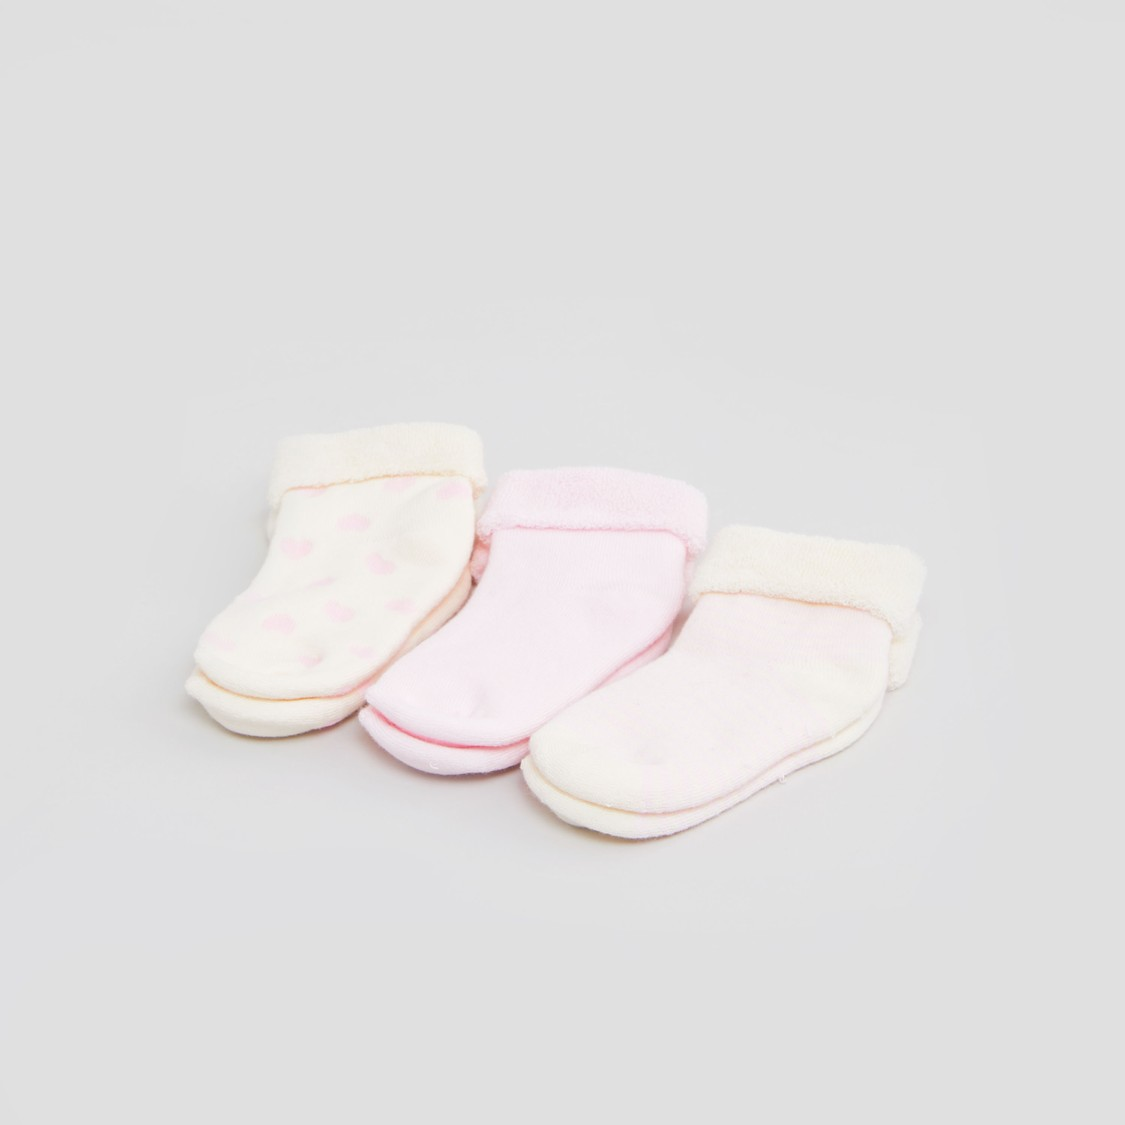 Set of 3 - Assorted Socks with Cuffed Hem